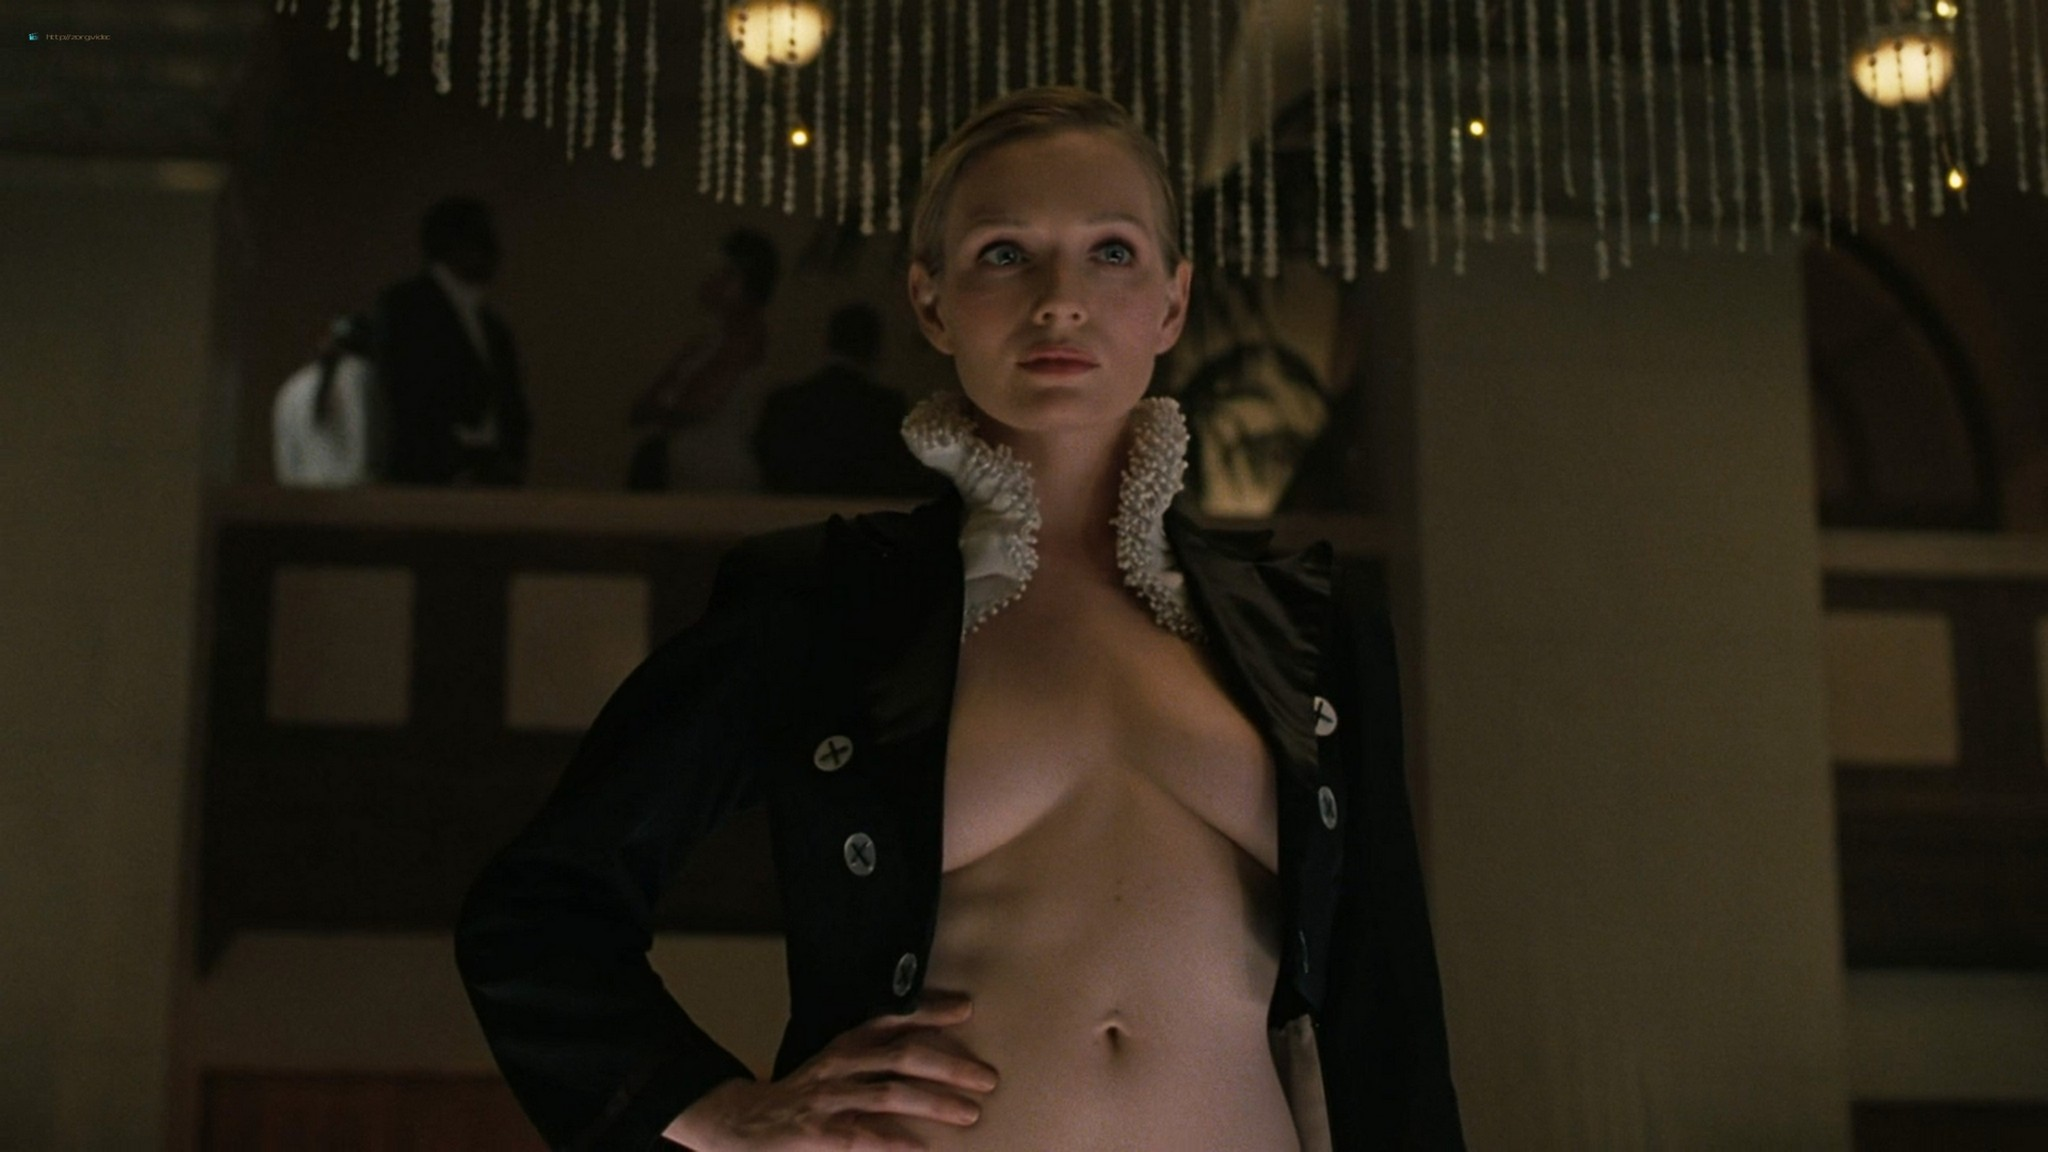 Katherine Murphy nude full frontal - Westworld (2020) s3e4 HD 1080p (6)